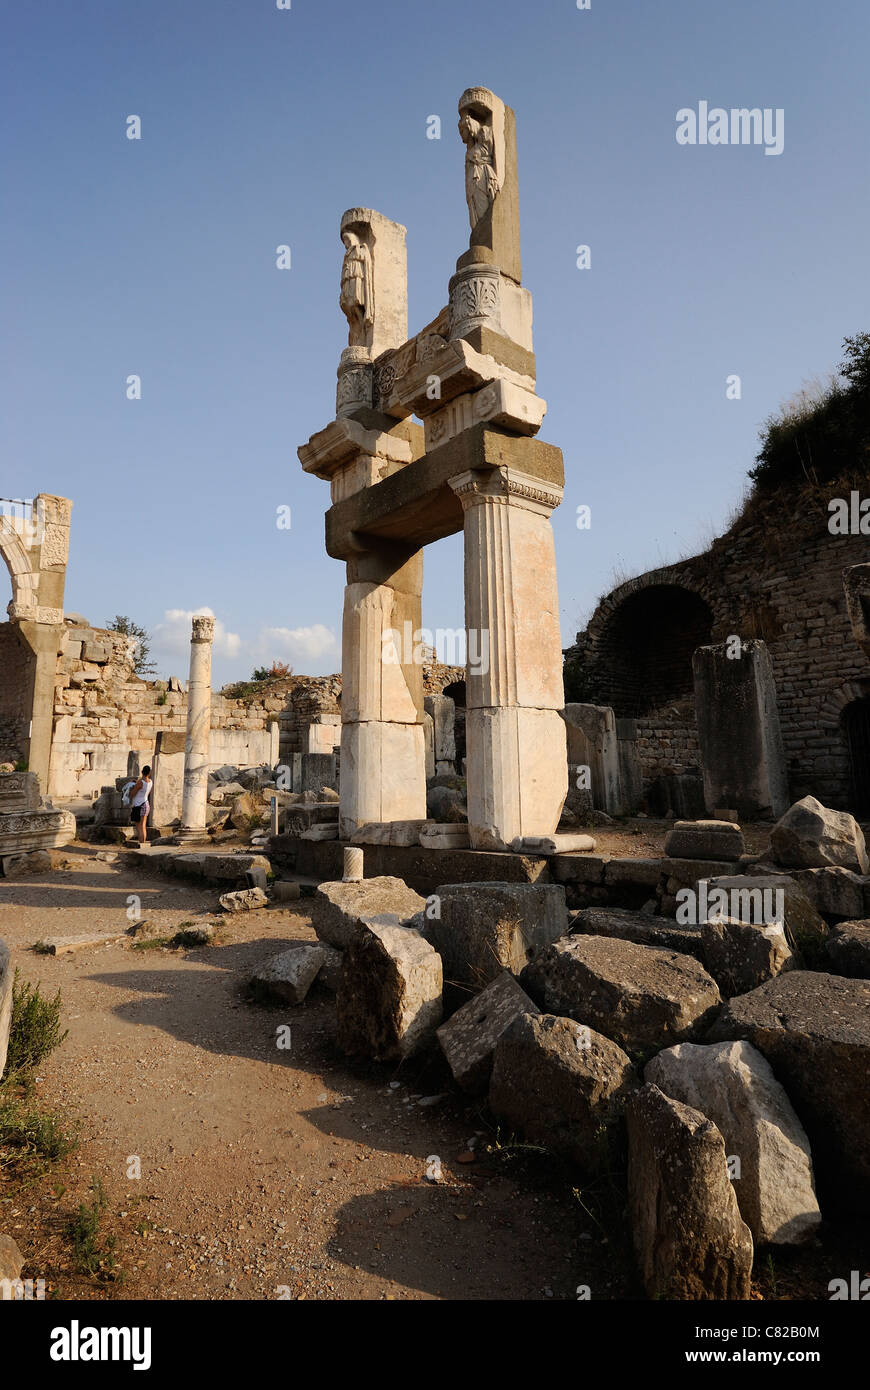 Ephesus, Domitian Square, remaining columns and marble carvings of the Fountain and Temple of Domitian, Ephesus, - Stock Image